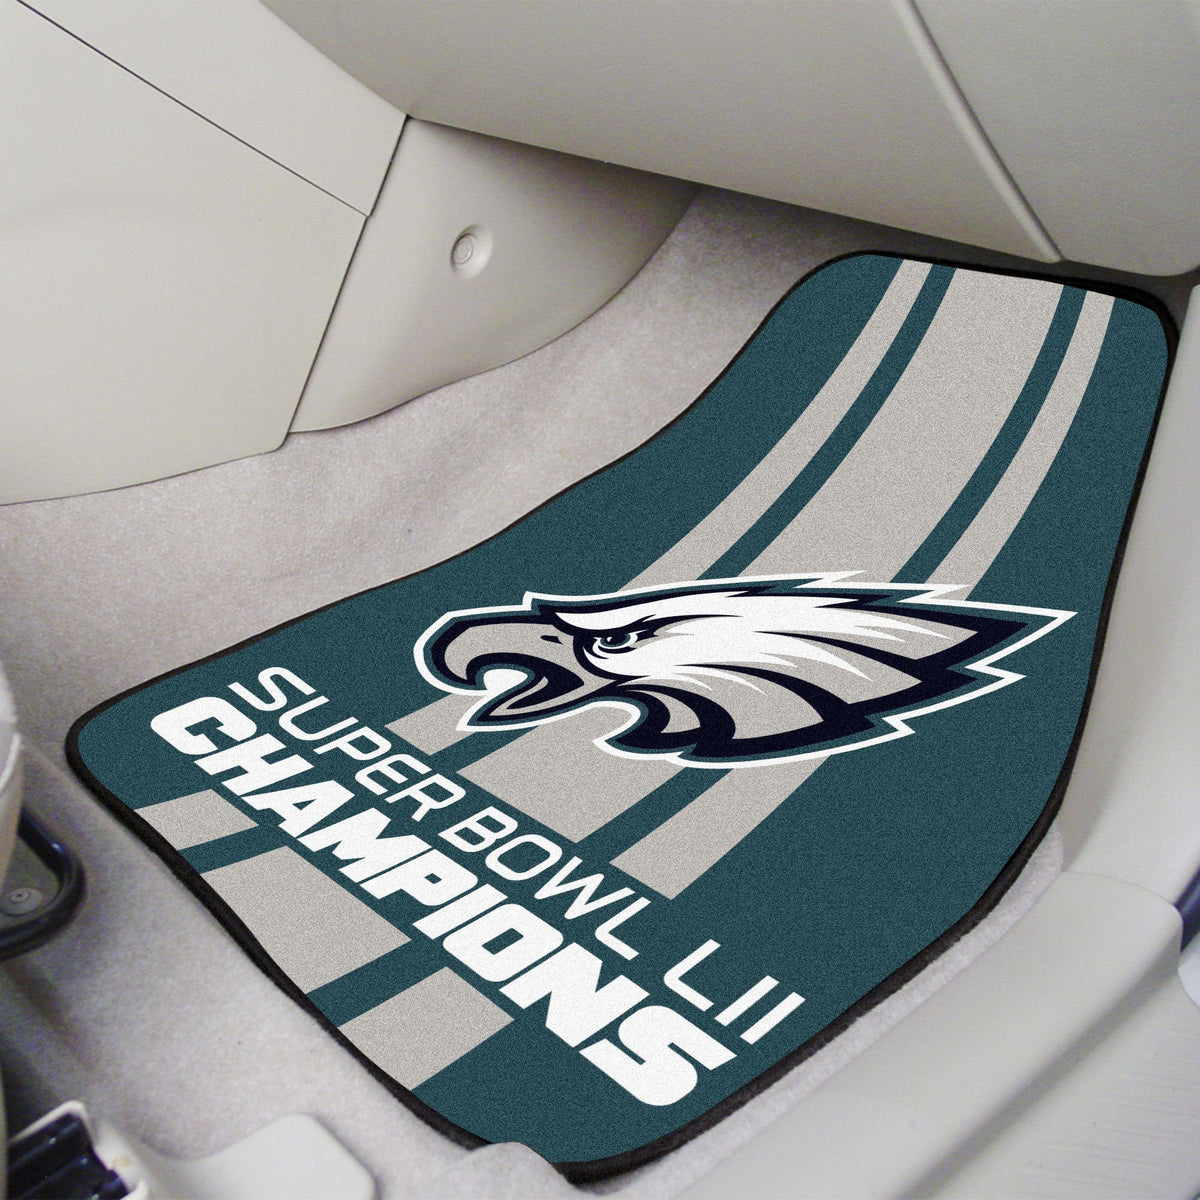 "NFL - 2-pc Carpet Car Mat Set, 17"" x 27"" NFL Mats, Front Car Mats, 2-pc Carpet Car Mat Set, NFL, Auto Fan Mats Philadelphia Eagles 2"